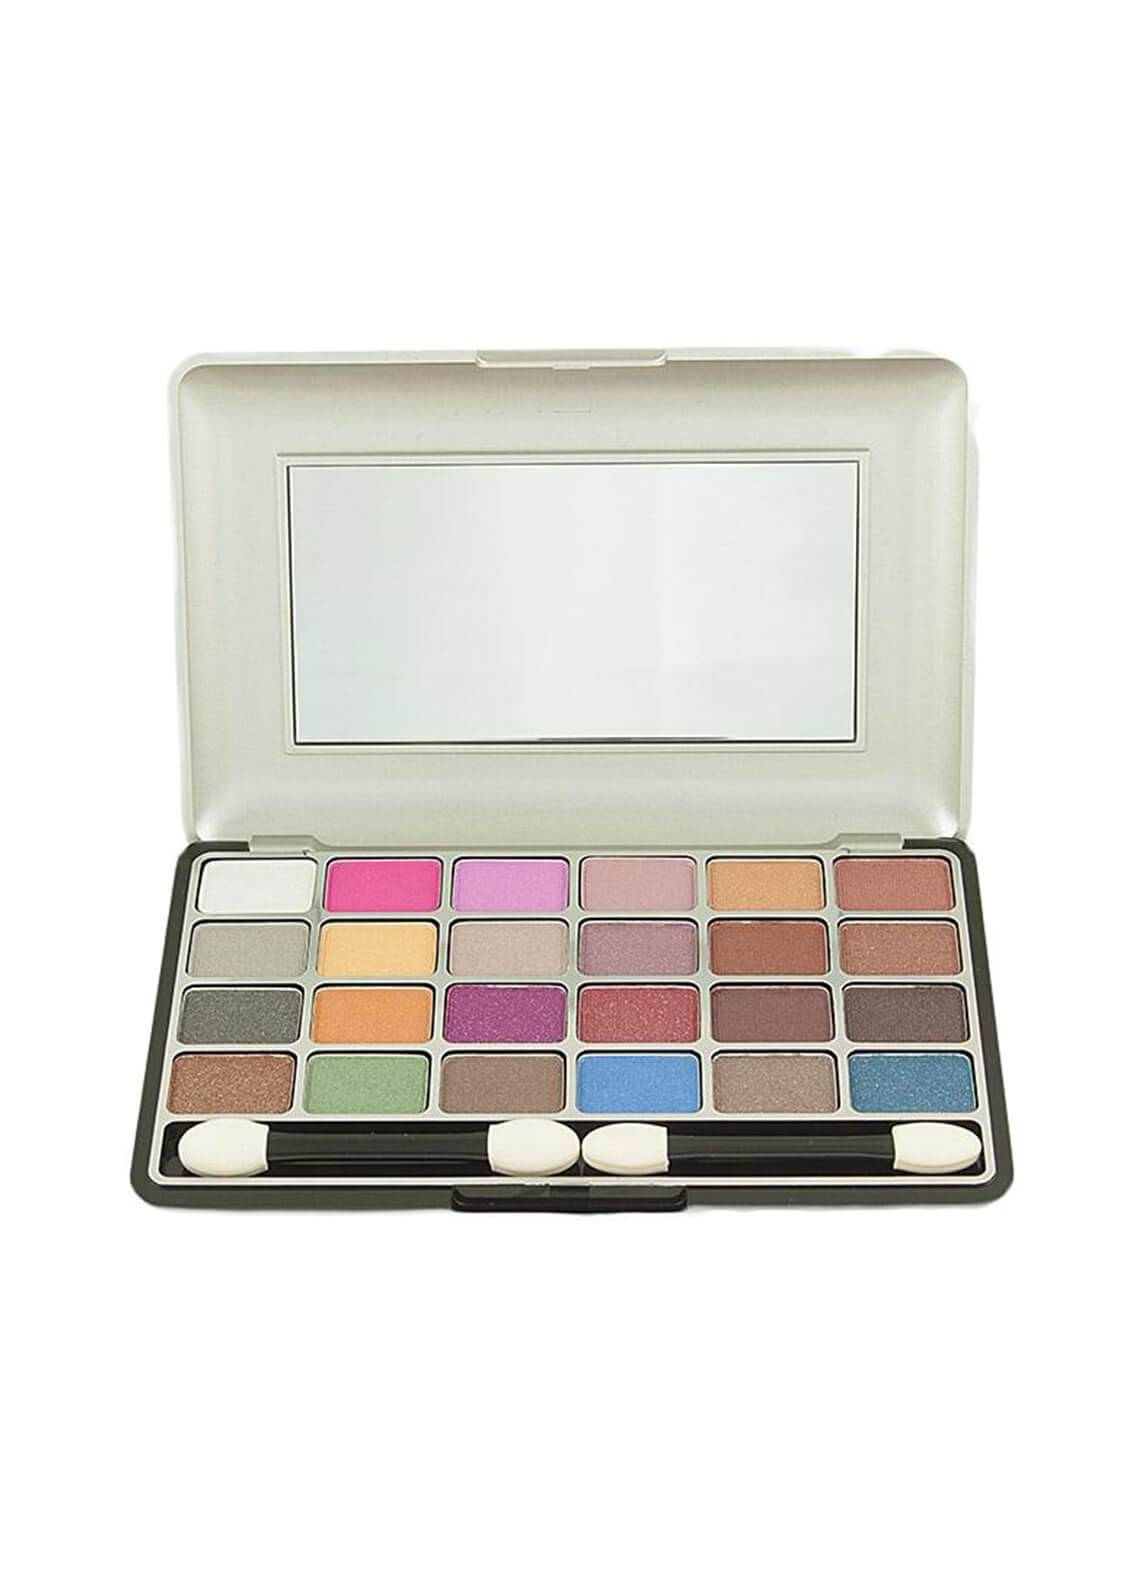 Sophia Asley Eye Shadow 24 Colors - 1